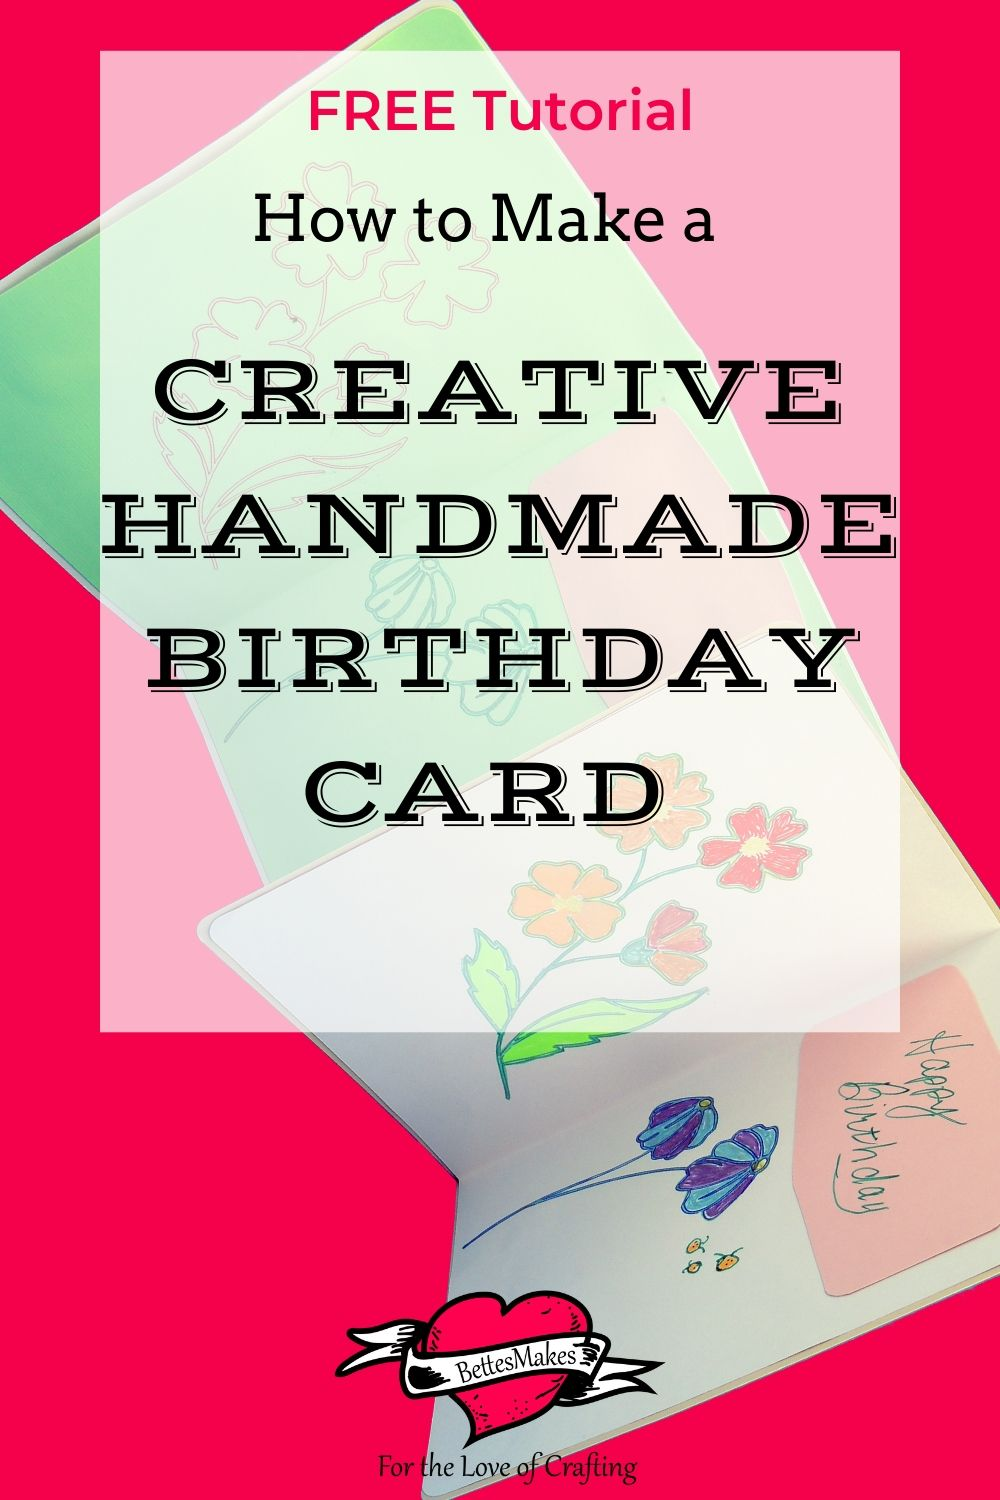 How to Make a Creative Handmade Birthday Card with Cut Out Flowers